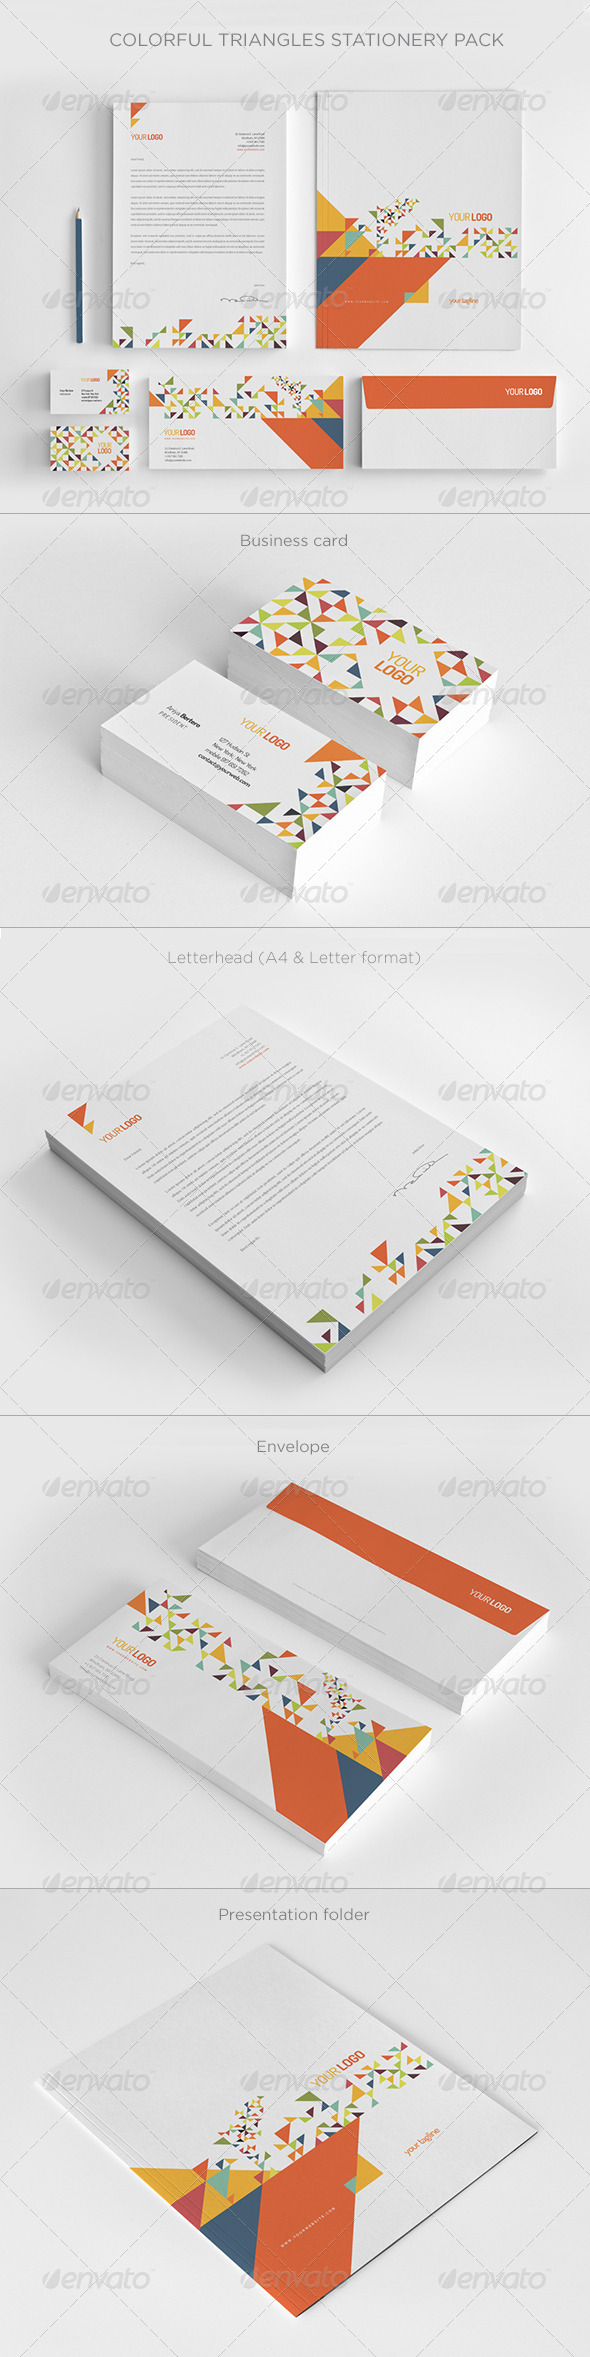 Colorful Triangles Stationery Pack - Stationery Print Templates